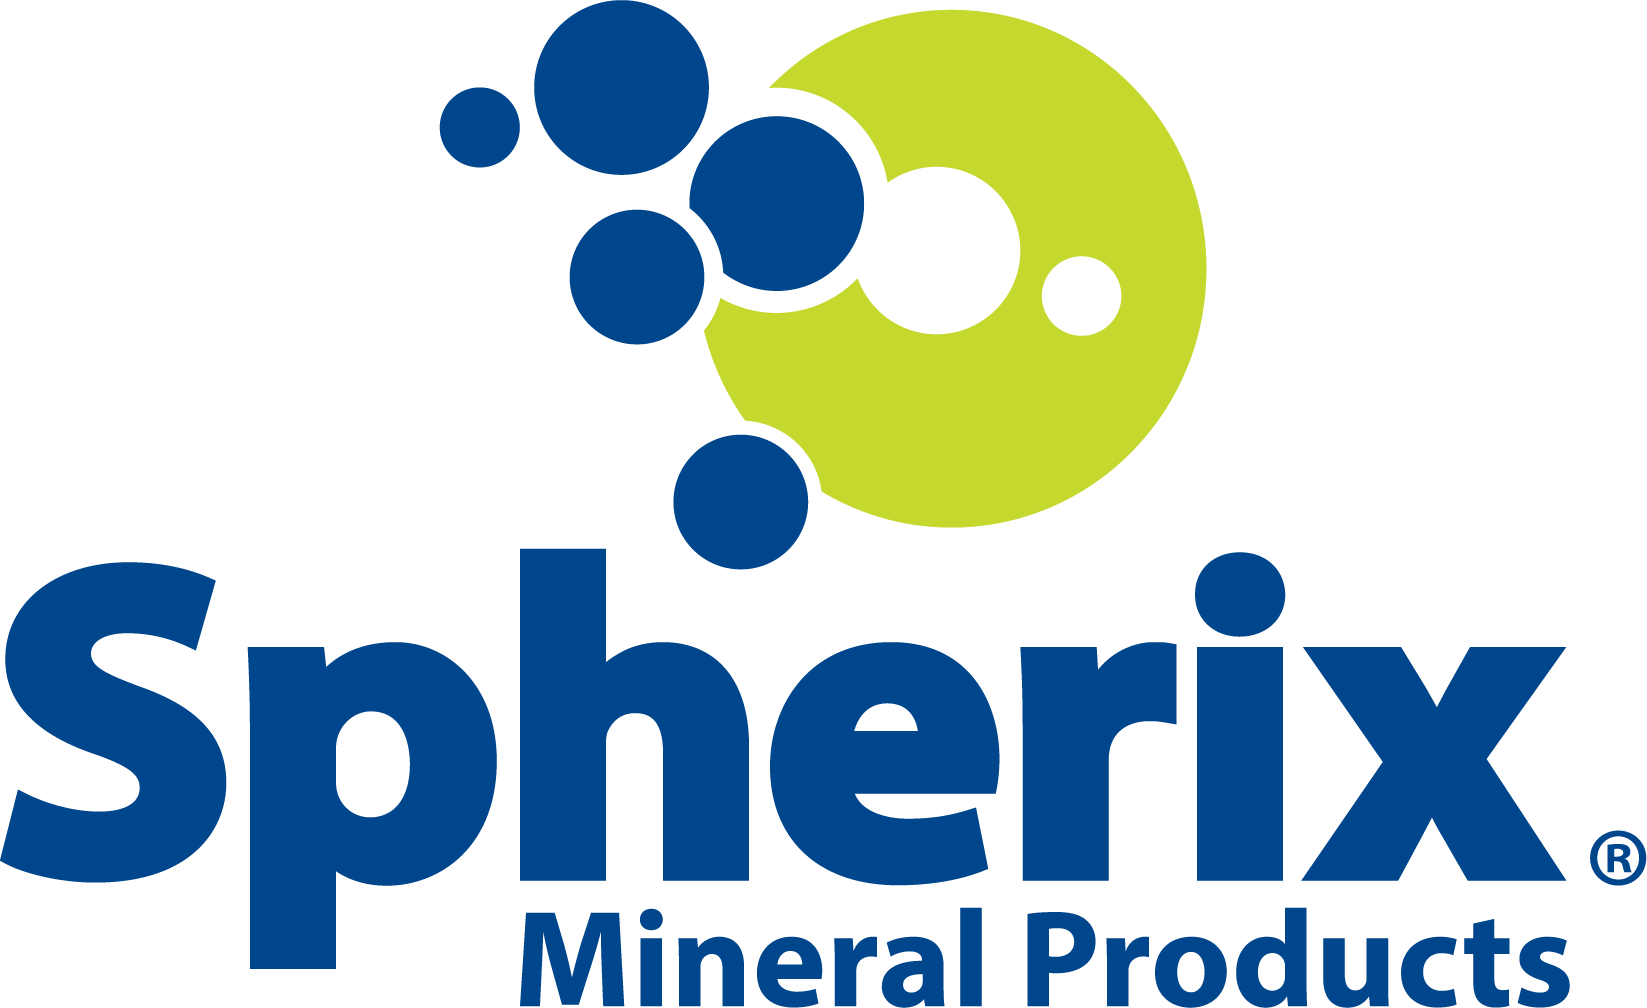 Spherix Mineral Products